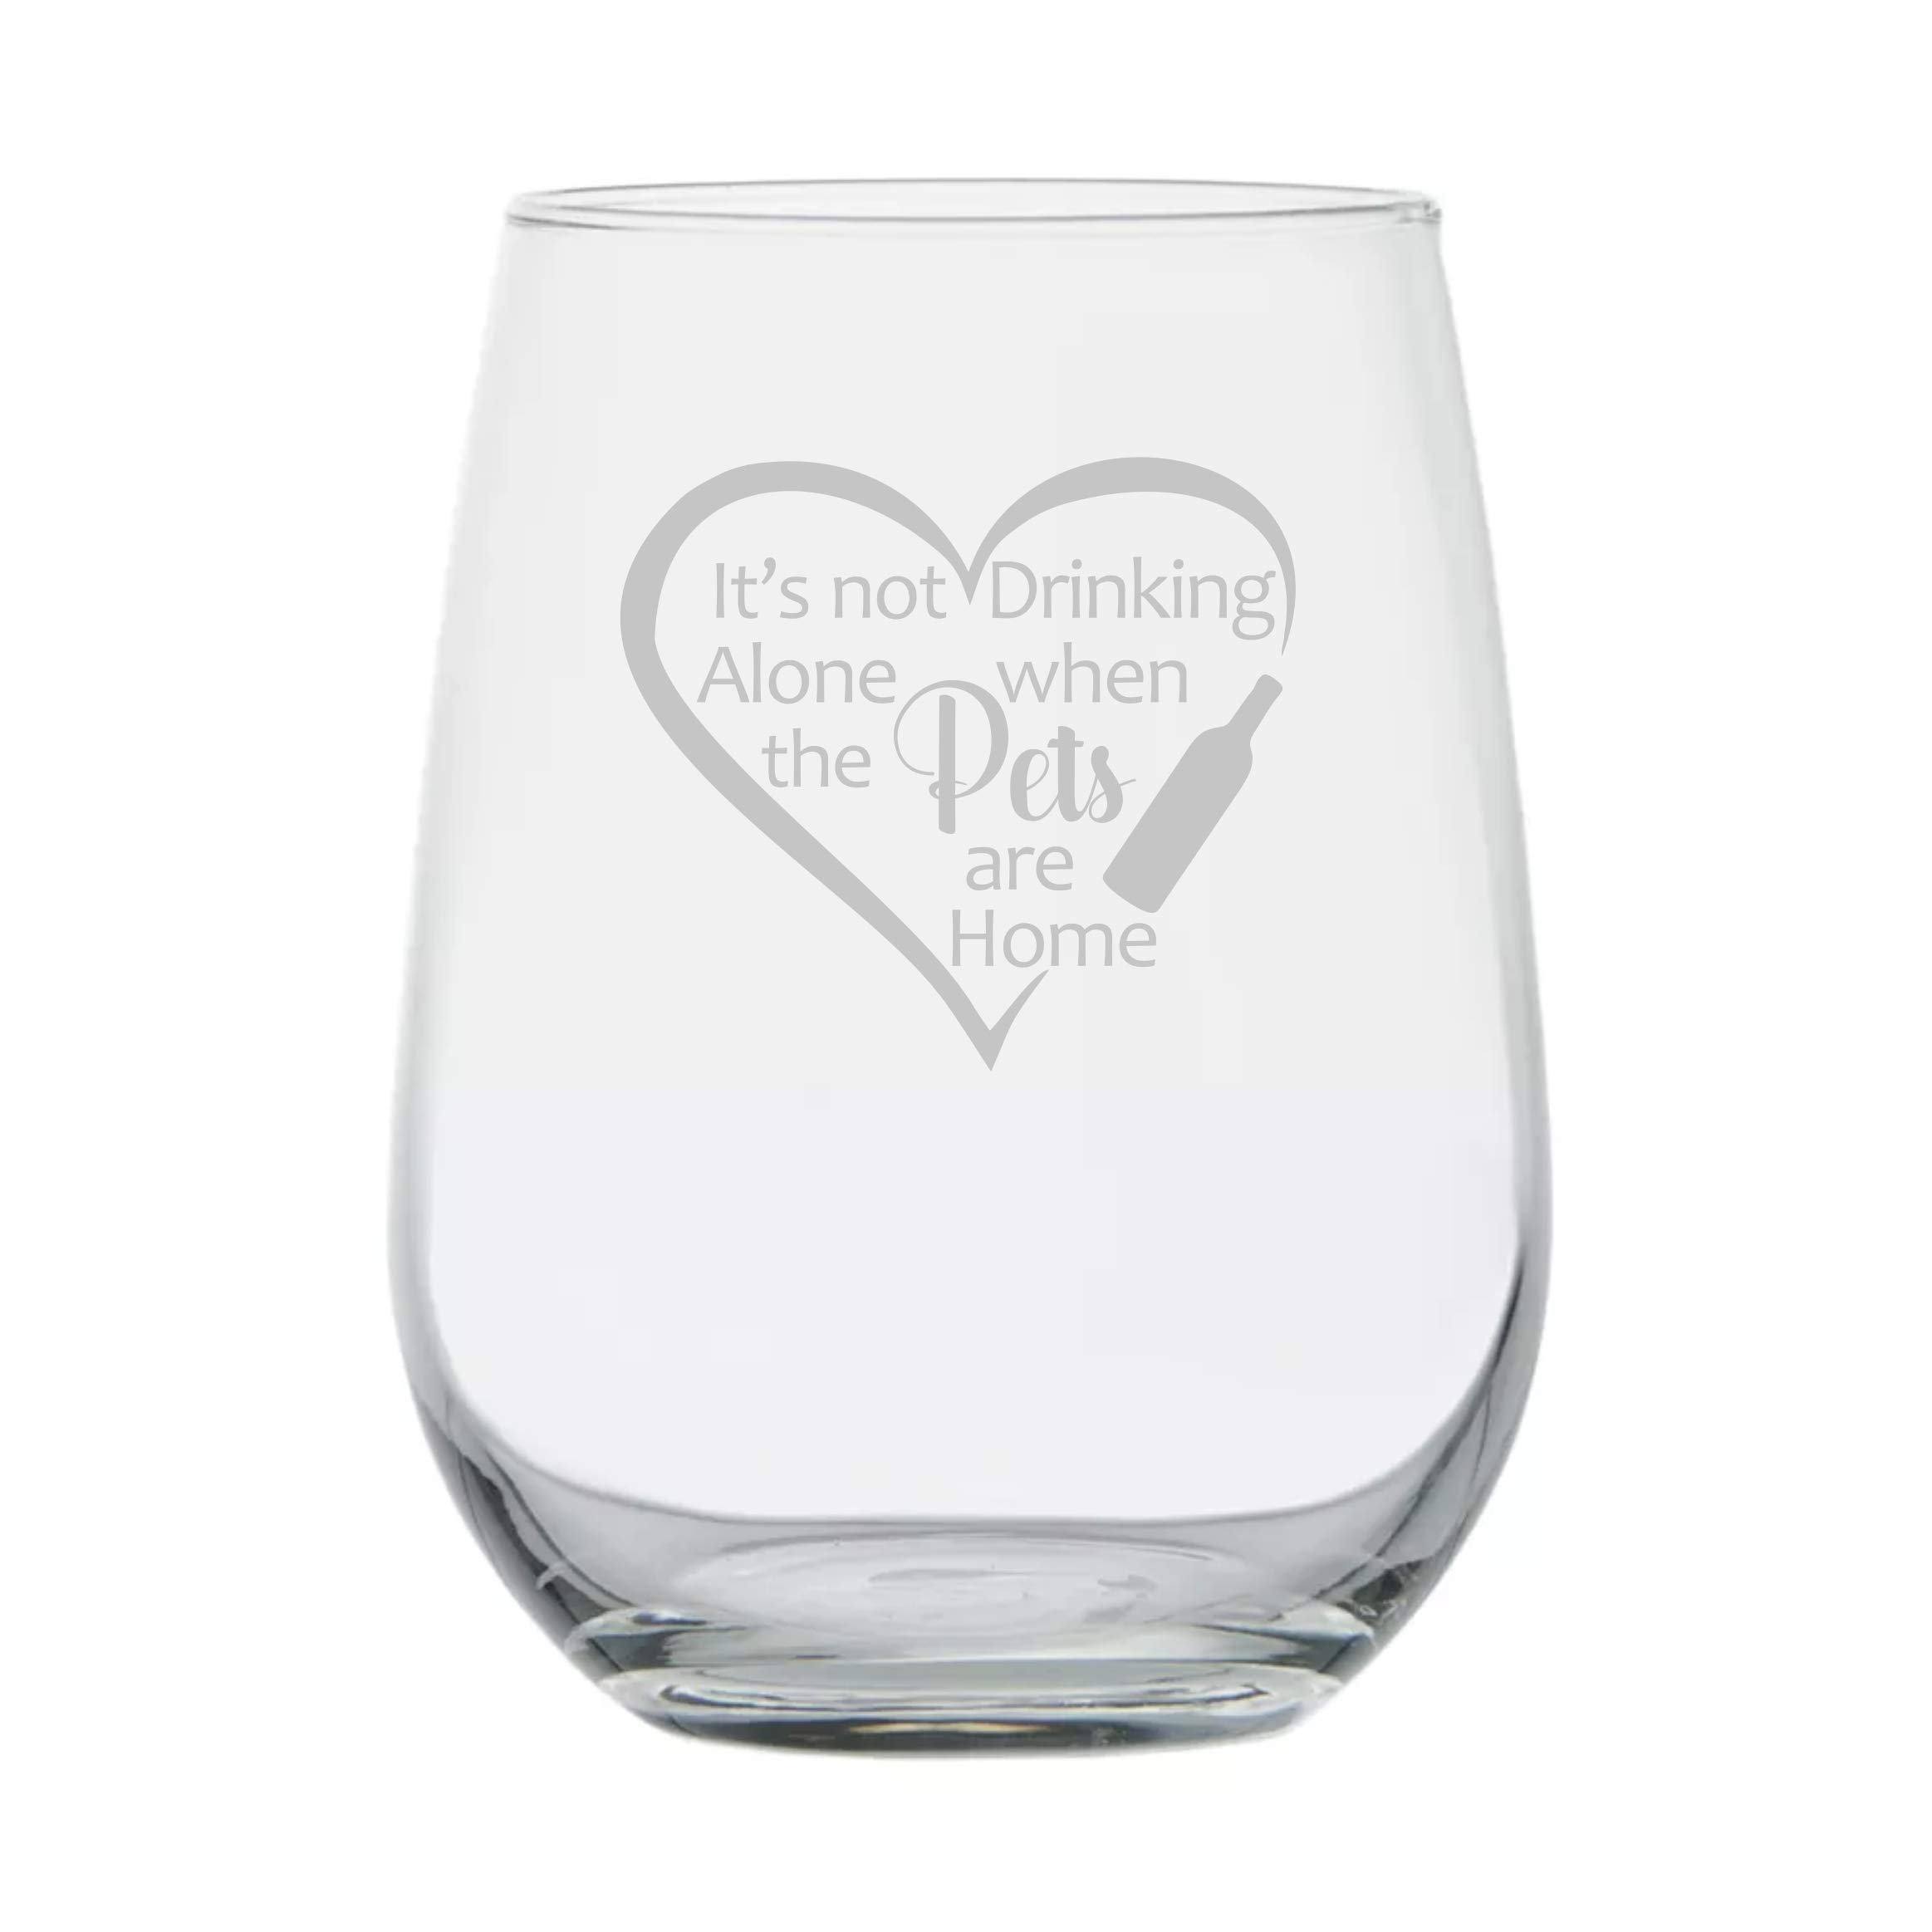 Animal Lover Gifts ★ It's Not Drinking Alone when the Pets are Home ★ 17 oz Dishwasher Safe ★ Funny Wine Glass ★ Animal Rescue ★ Gift for Dog Lover ★ Birthday Glass ★ Couples Anniversary